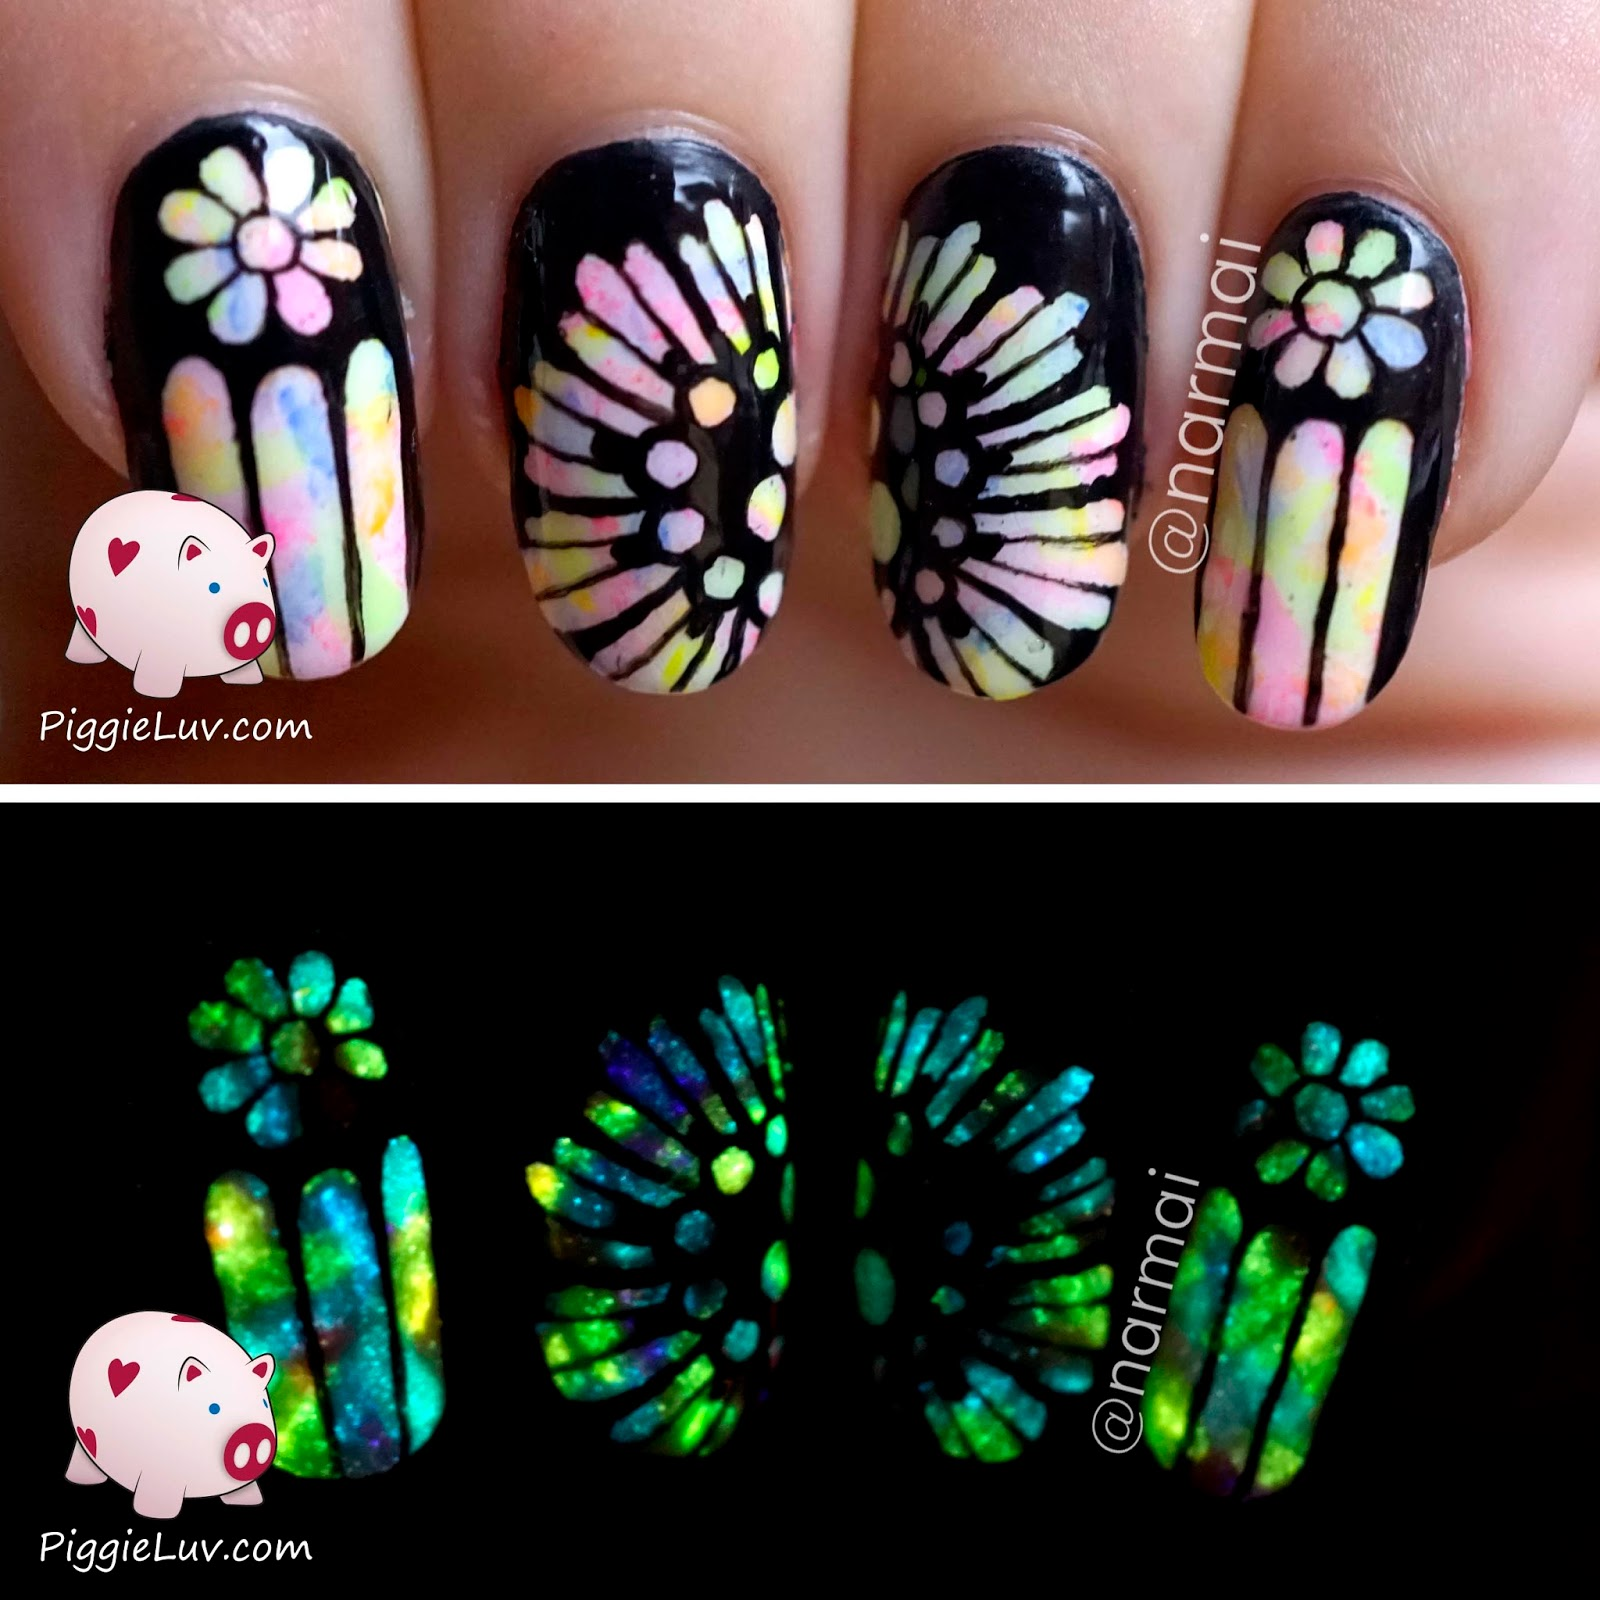 Piggieluv glow in the dark rose window nail art ive been wanting to do a glow in the dark church window design for a while now but ugh too many ideas not enough nails here they are now though prinsesfo Images